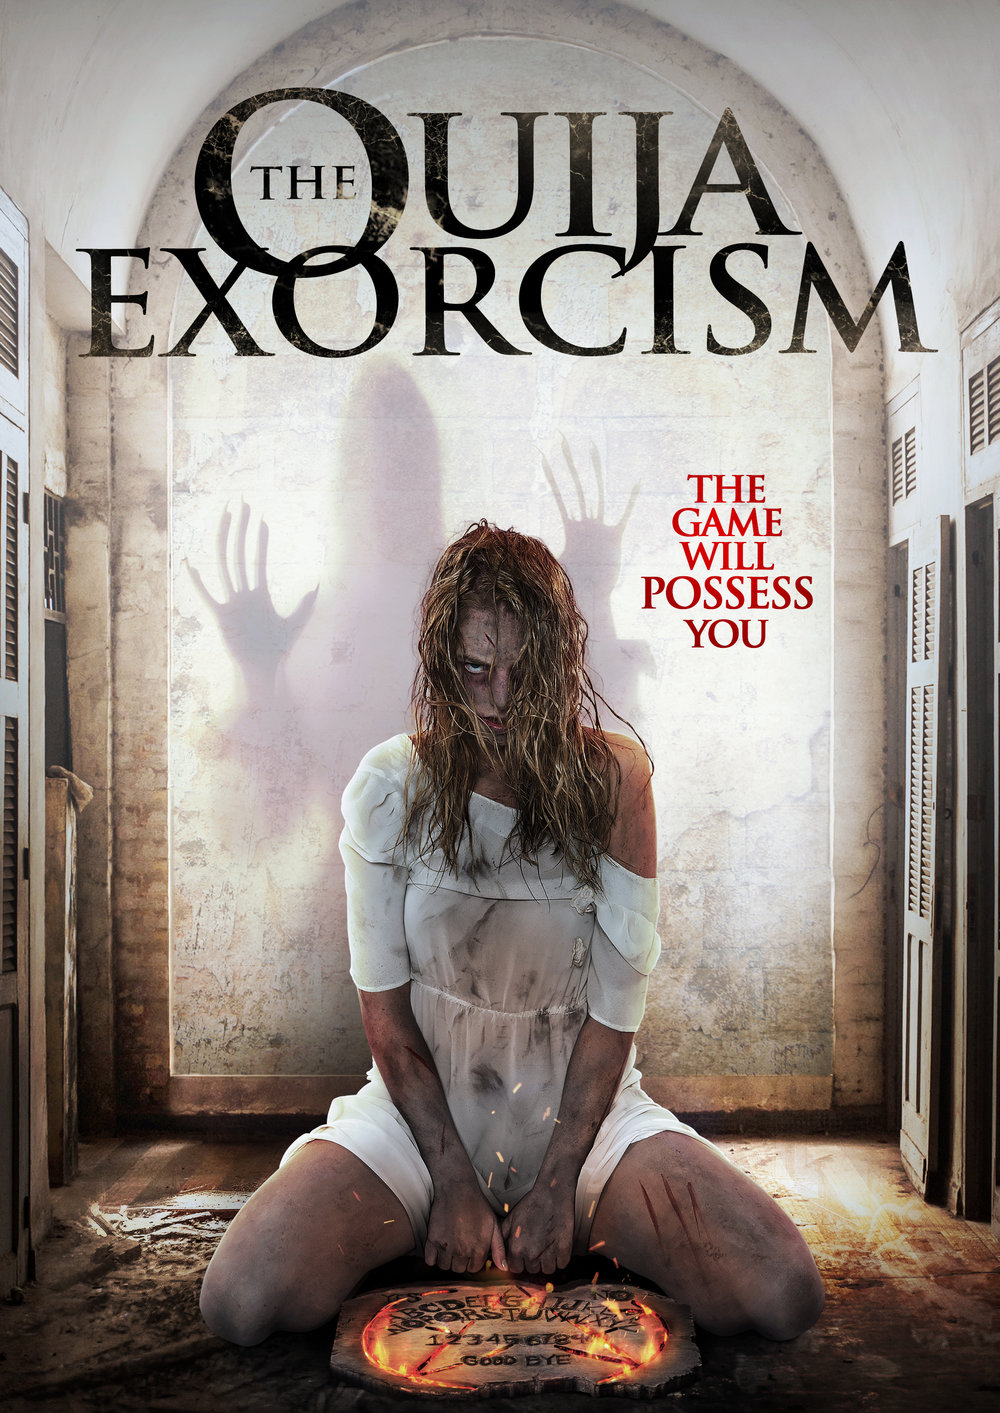 The Ouija Exorcism   Thirty years after being incarcerated in its ouija board prison by a well-known exorcist, a demon is accidentally set free to roam earth & terrorize all those who are responsible for its imprisonment. Can it once again be banished?